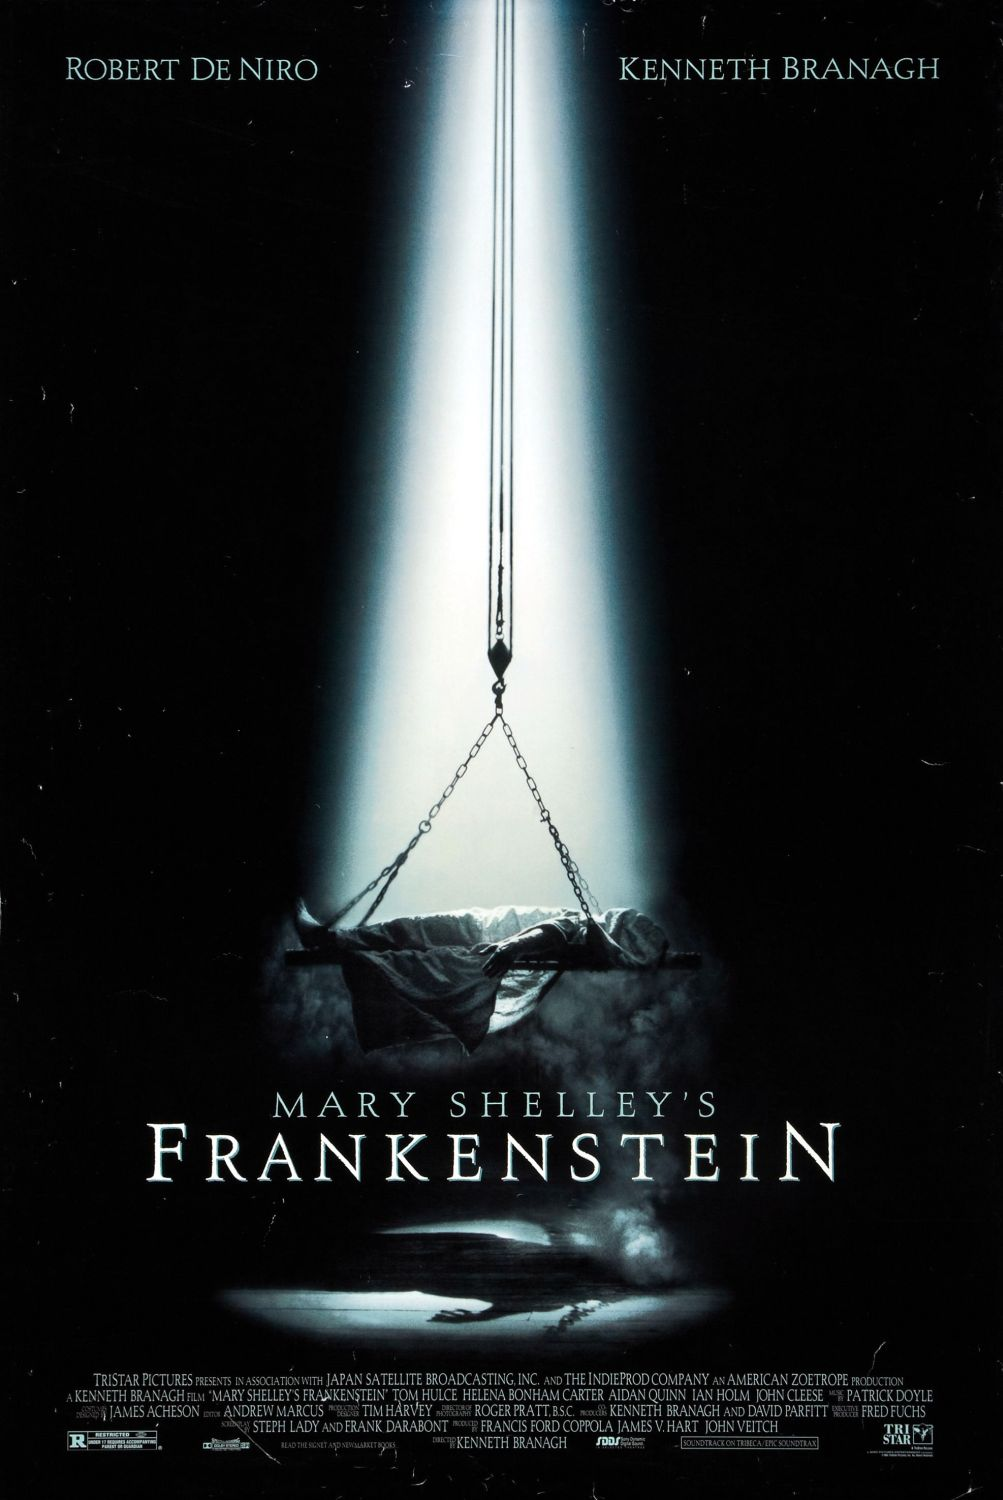 Mary Shelley's Frankenstein [1994]